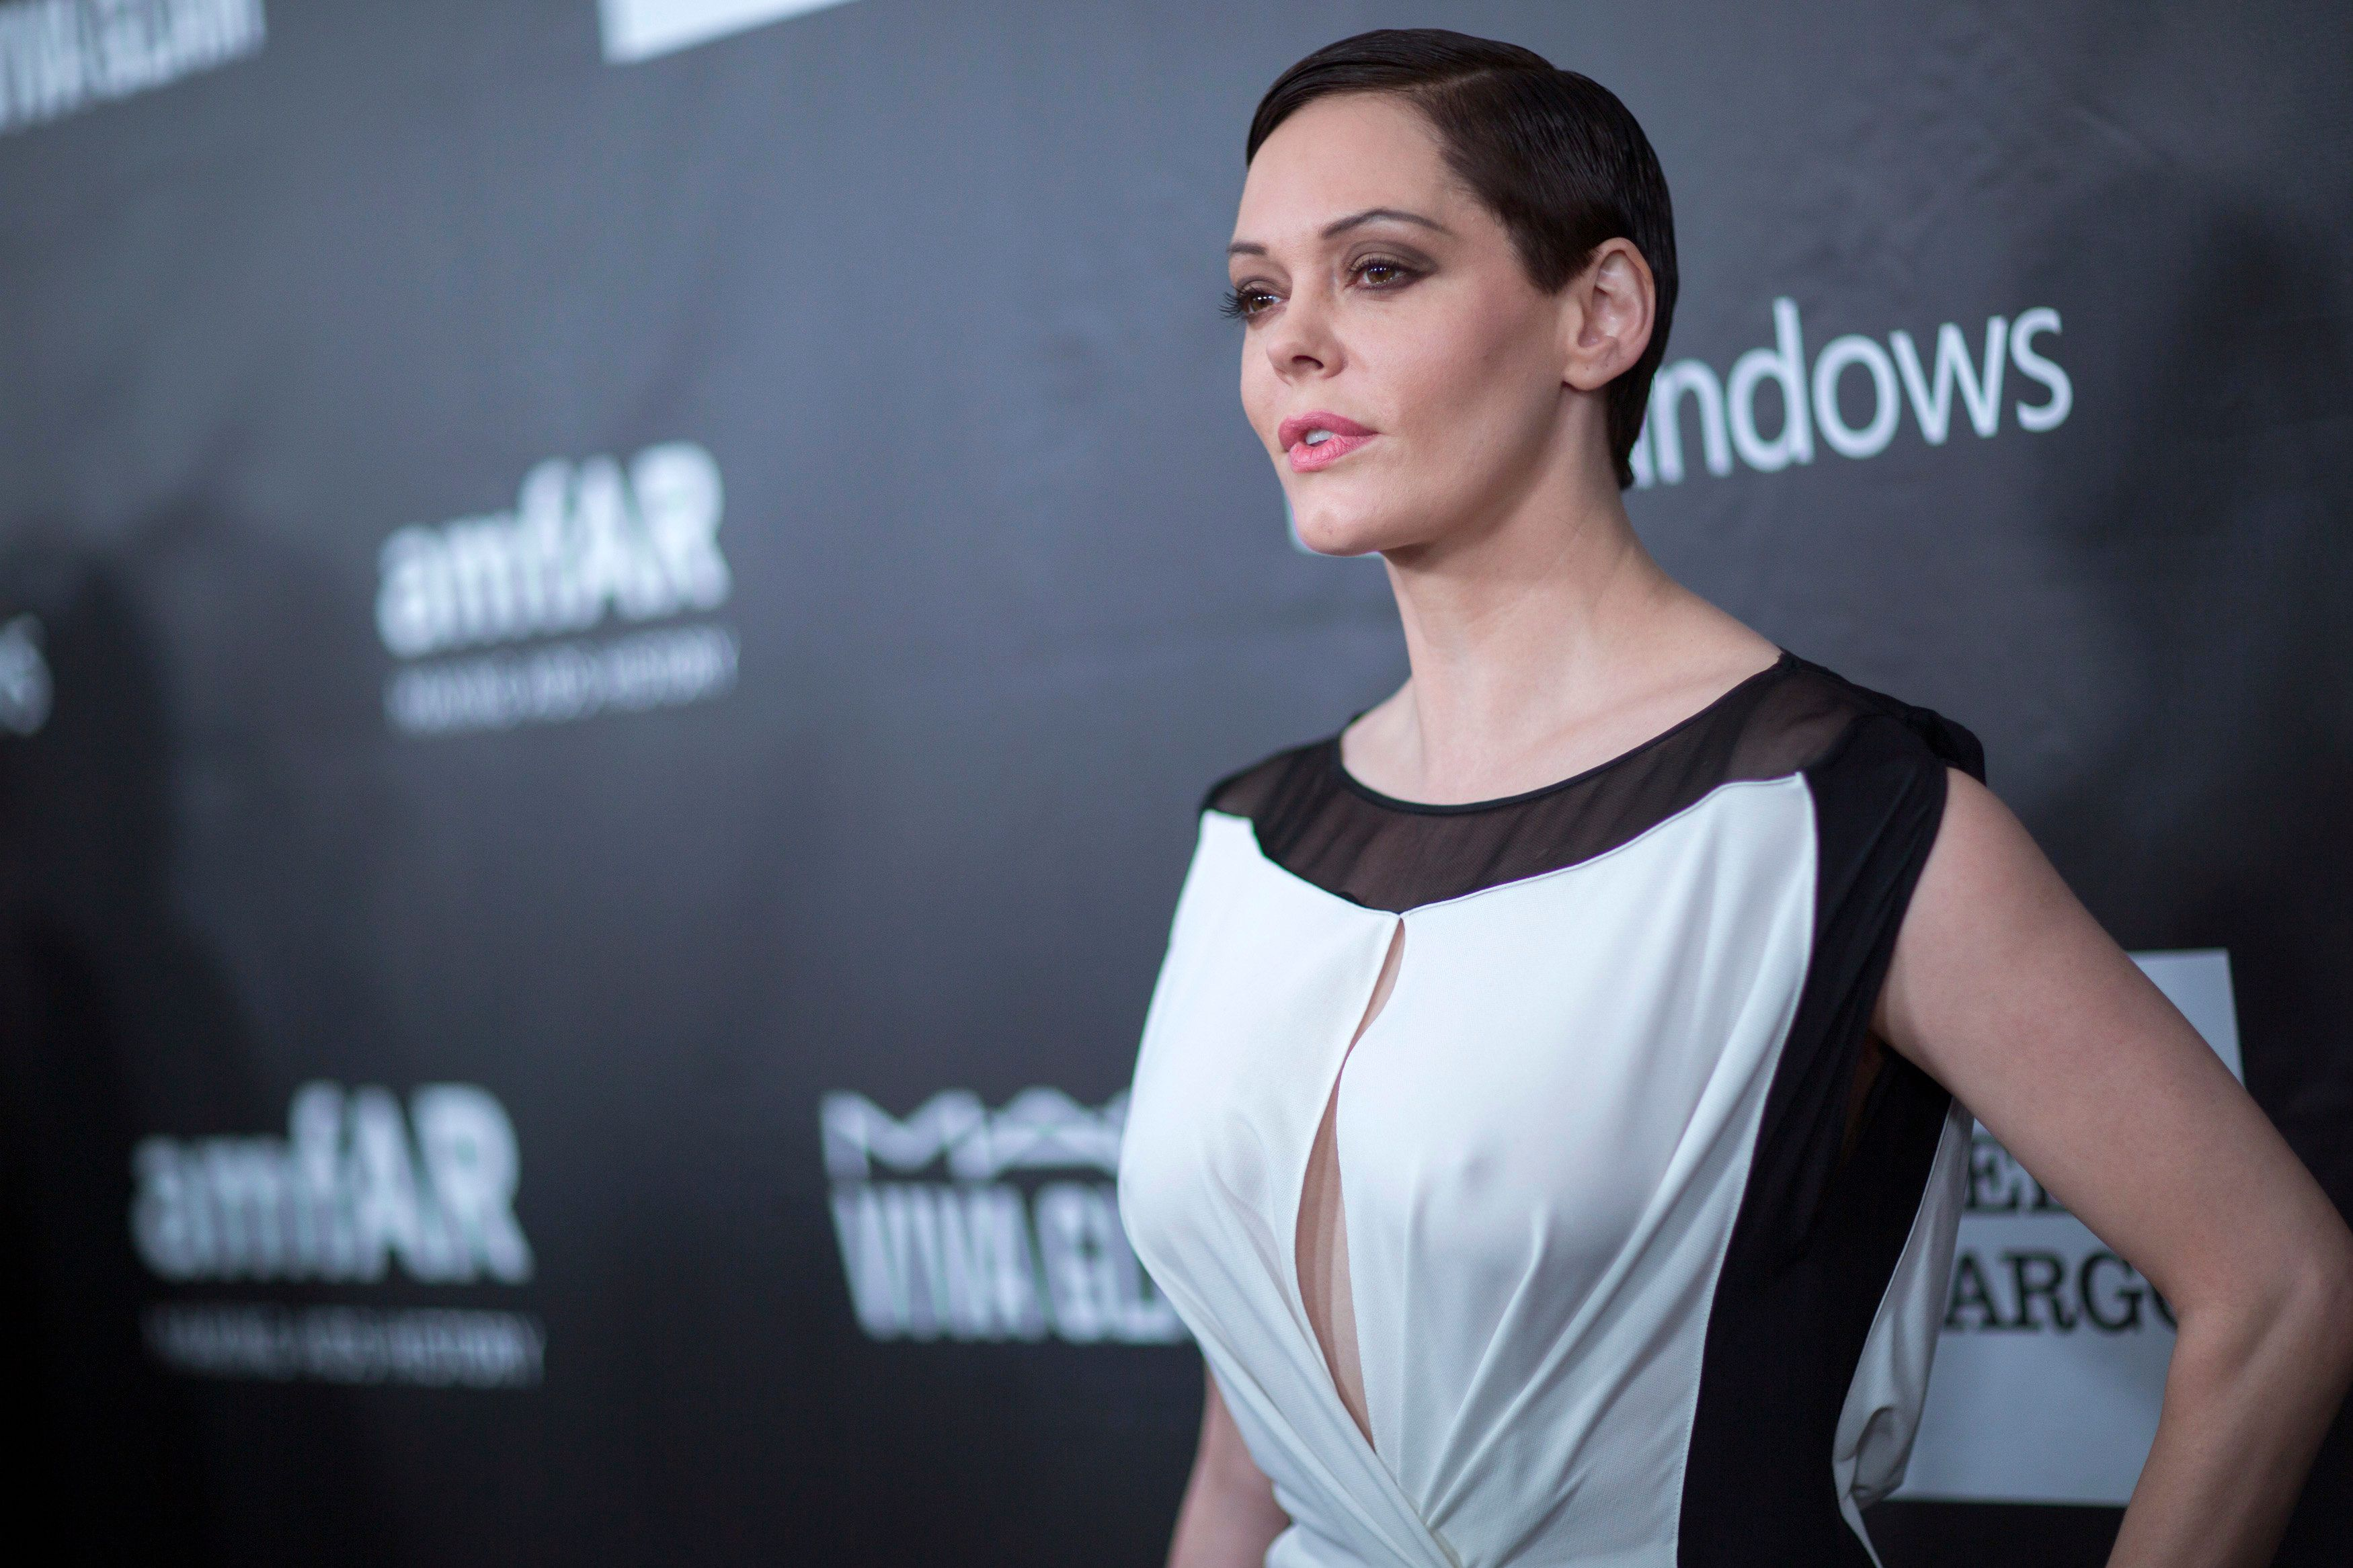 Rose McGowan was suspended from Twitter amid Weinstein scandal. Here's why